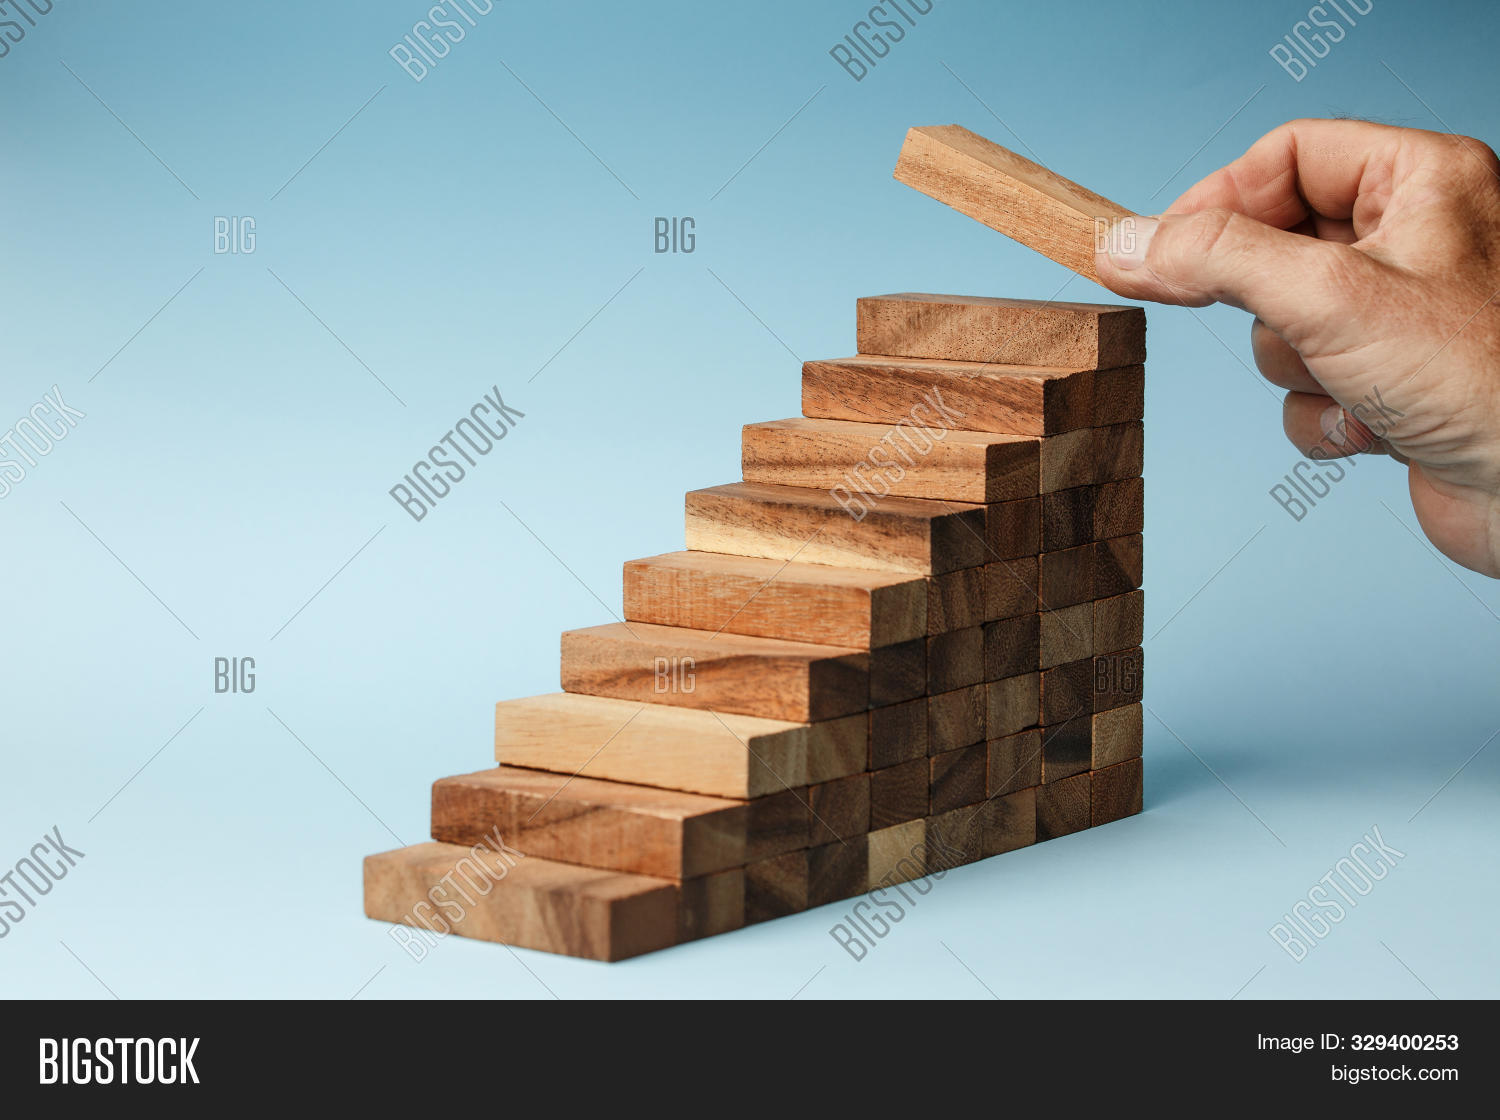 Man Hand Put Wooden Blocks Arranging Stacking For Development As Step Stair, On Blue Background. Con